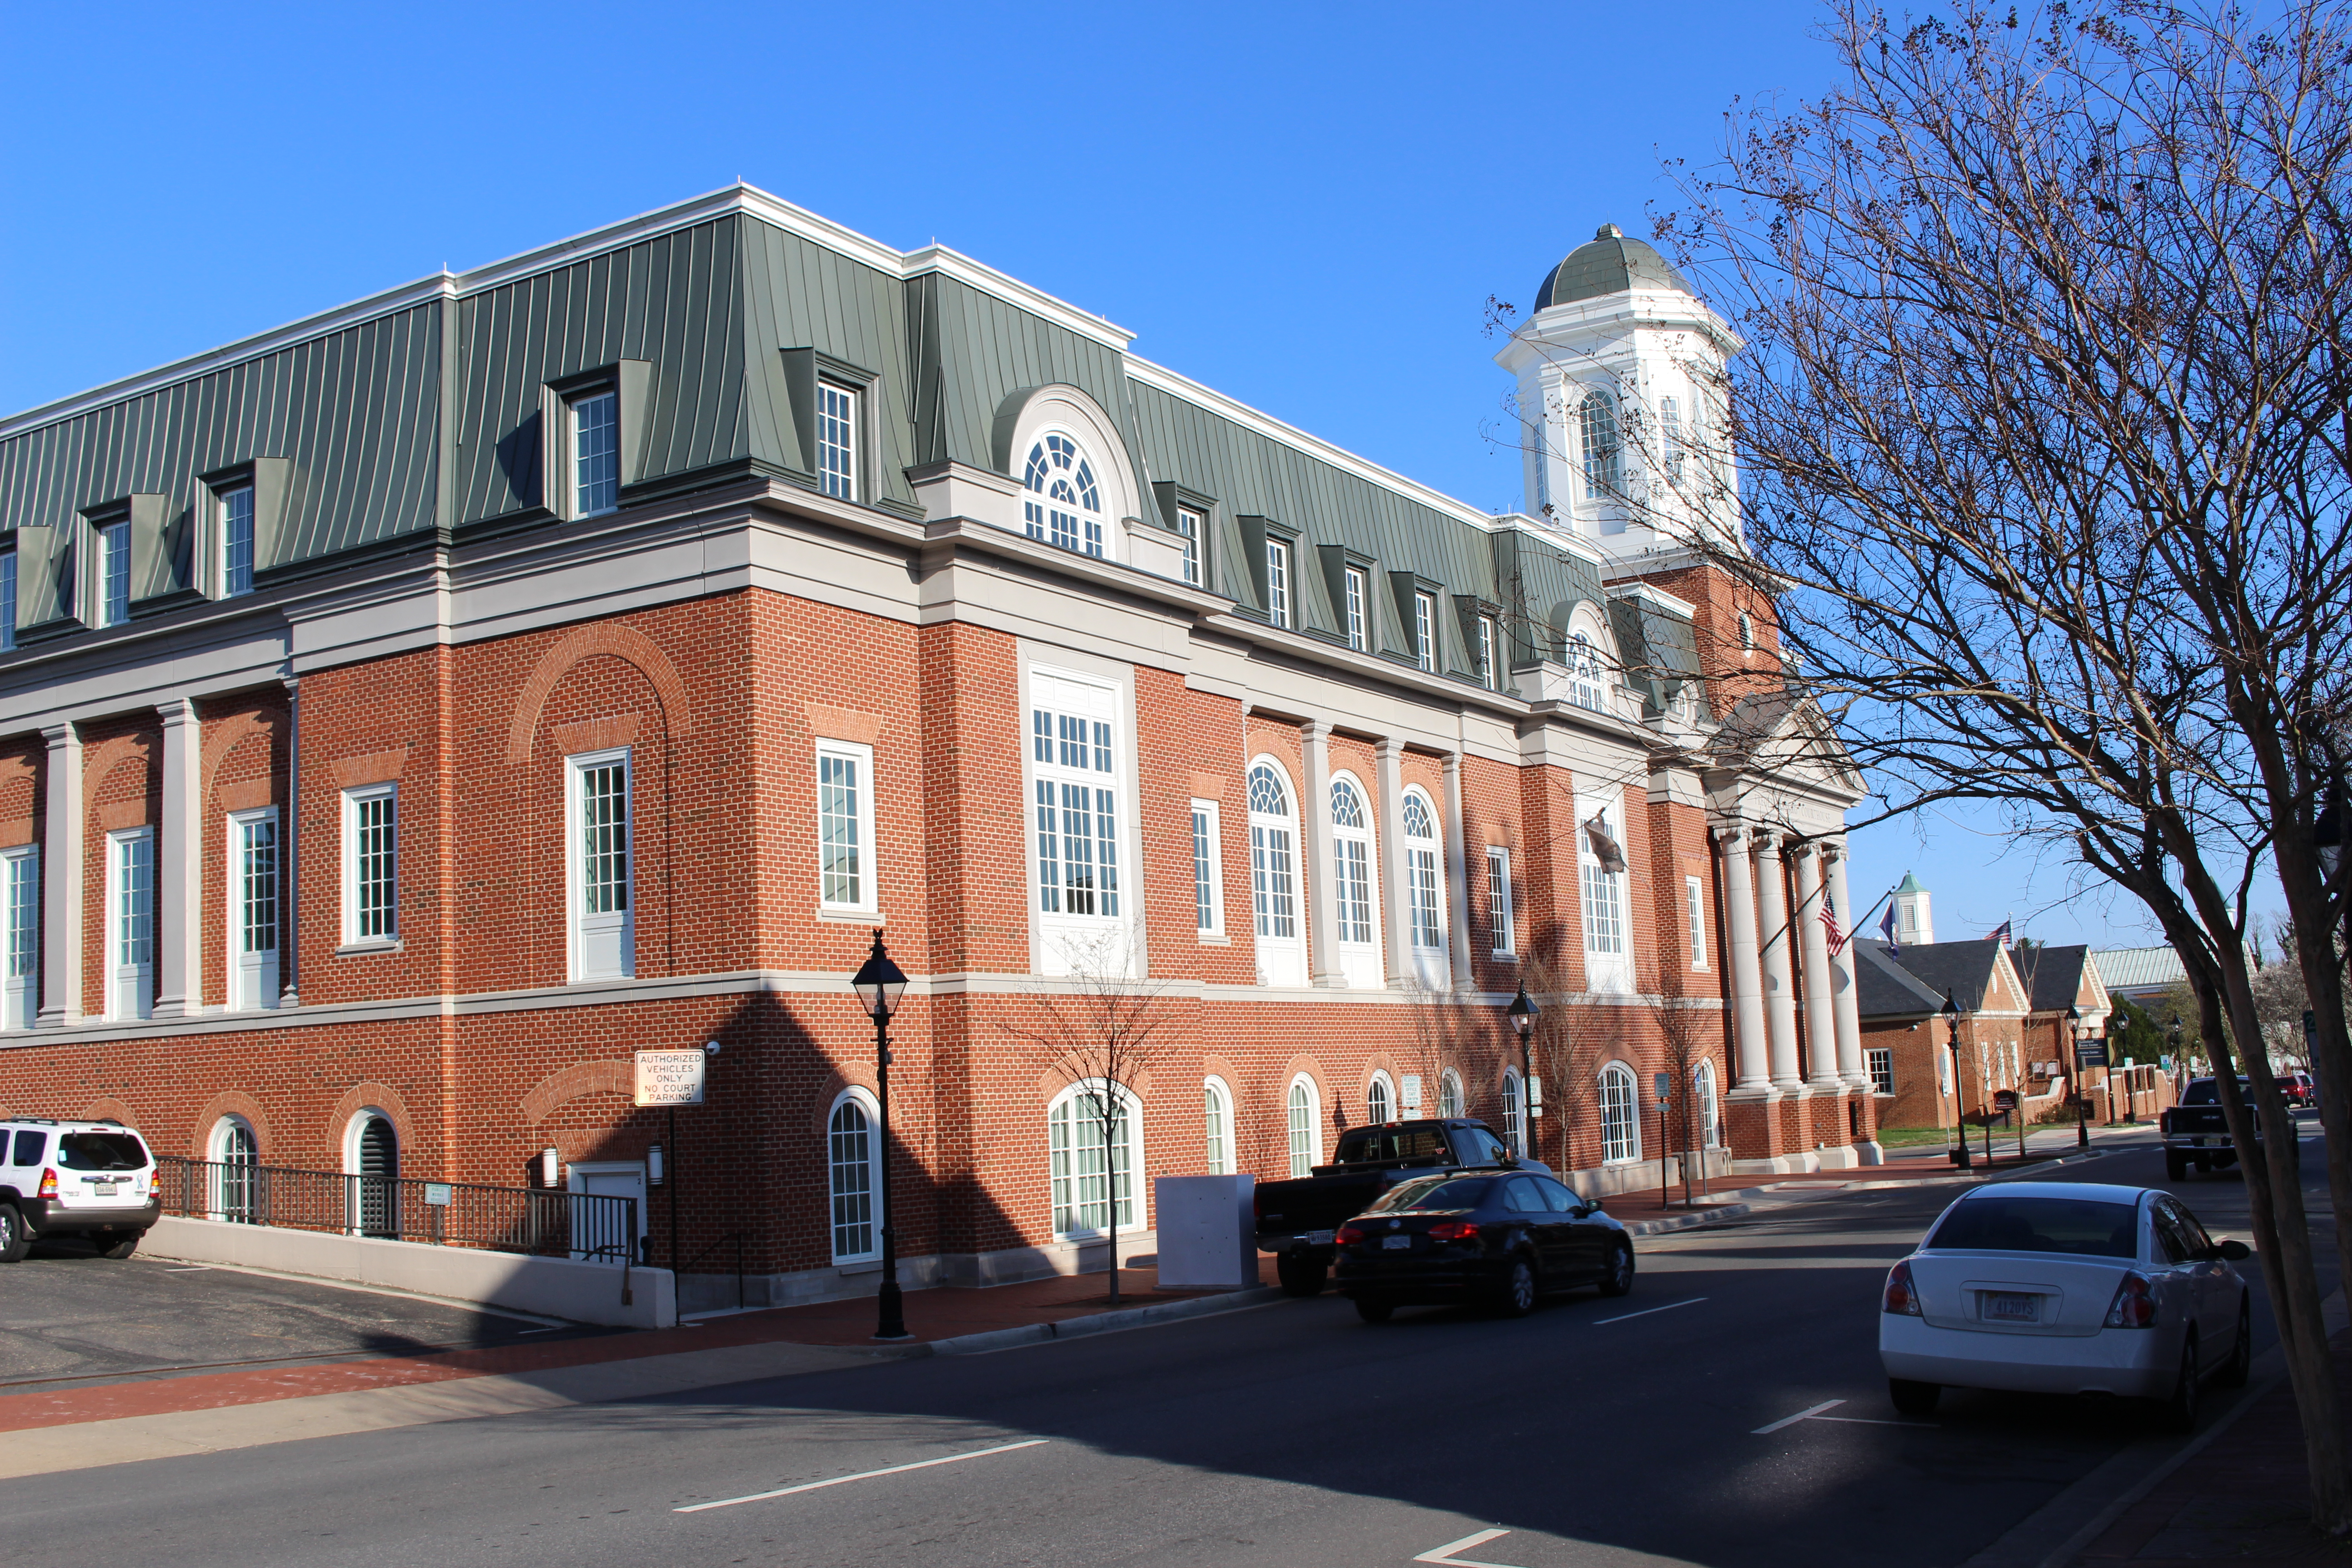 Pictured here is the current Fredericksburg Courthouse viewed from the back